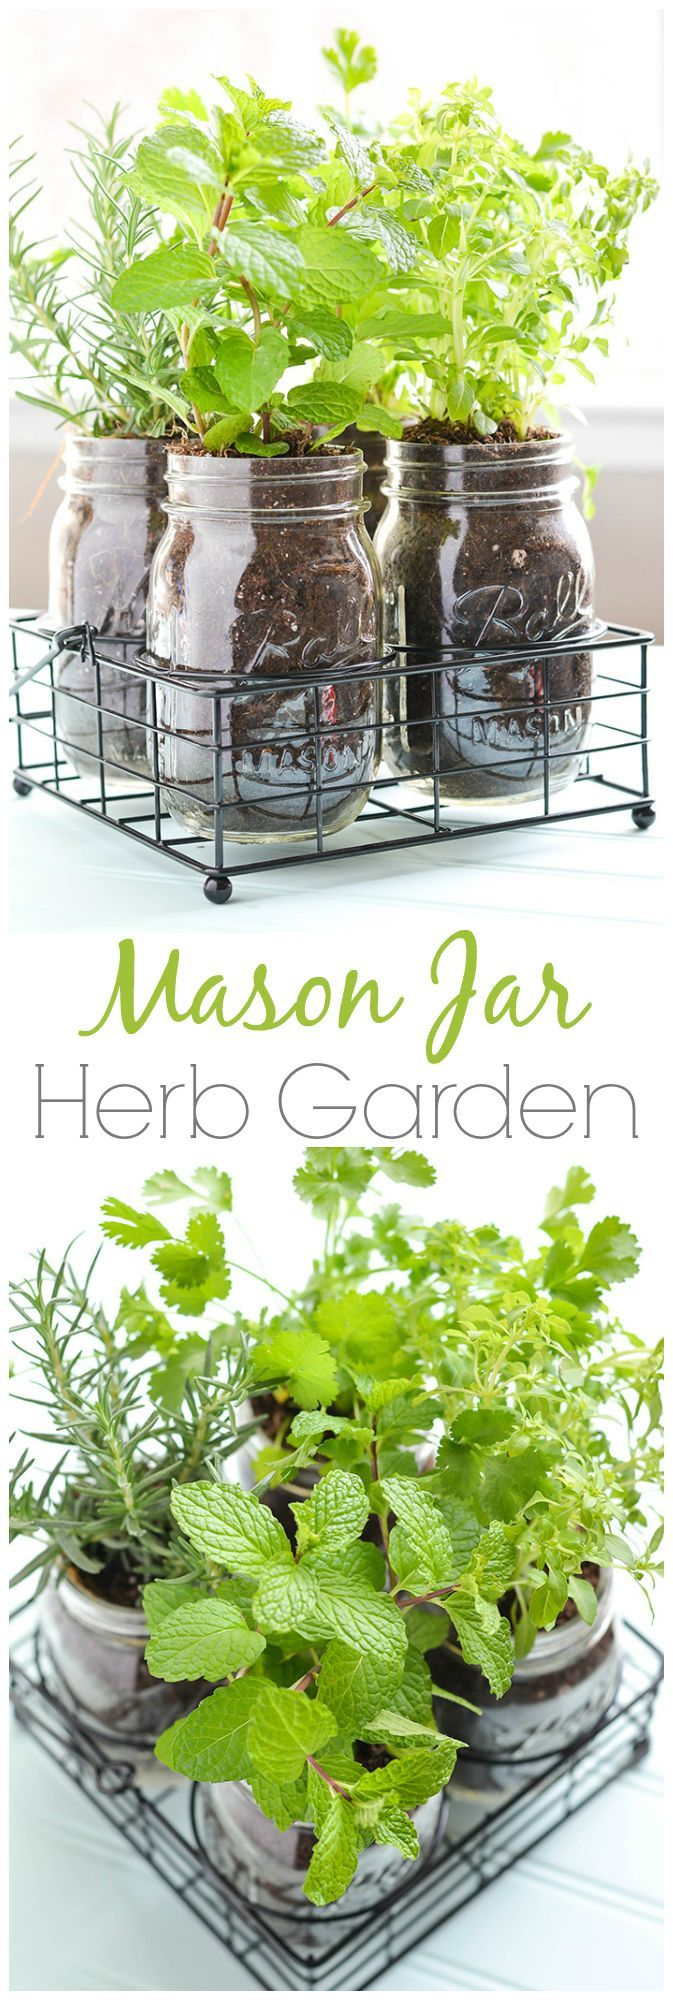 Jar Mason Herbs    Garden blue Home retro and the Herbs For Mason Garden  Herb     DIY sport   Jars